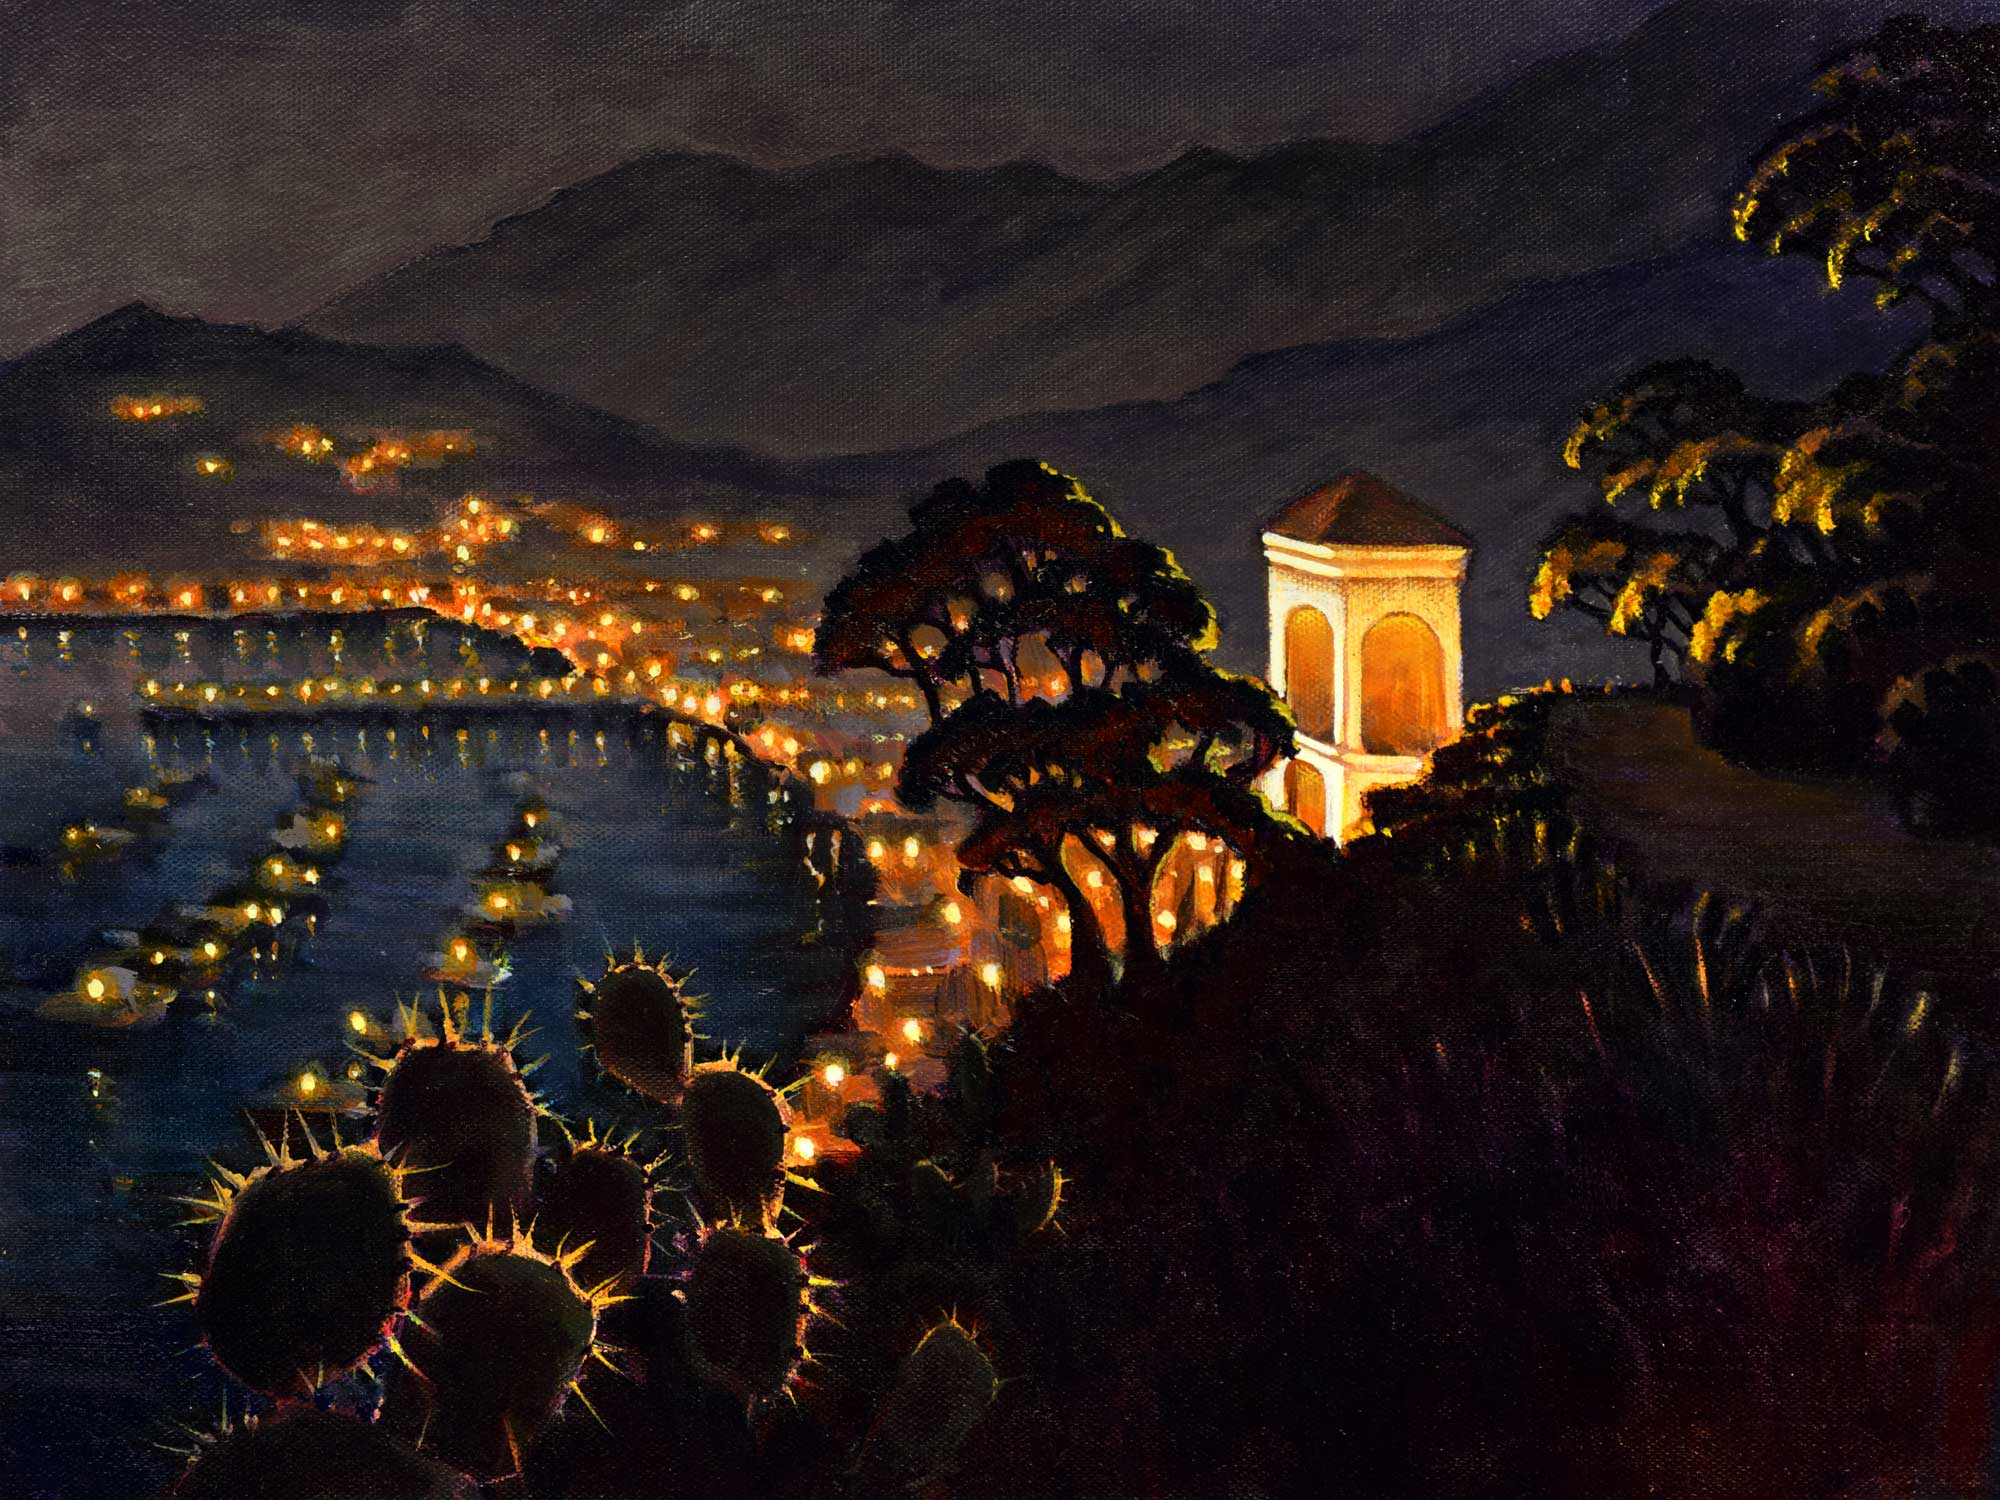 A plein air painting of the Chimes Tower overlooking Avalon Harbor on Catalina island off the coast of southern California